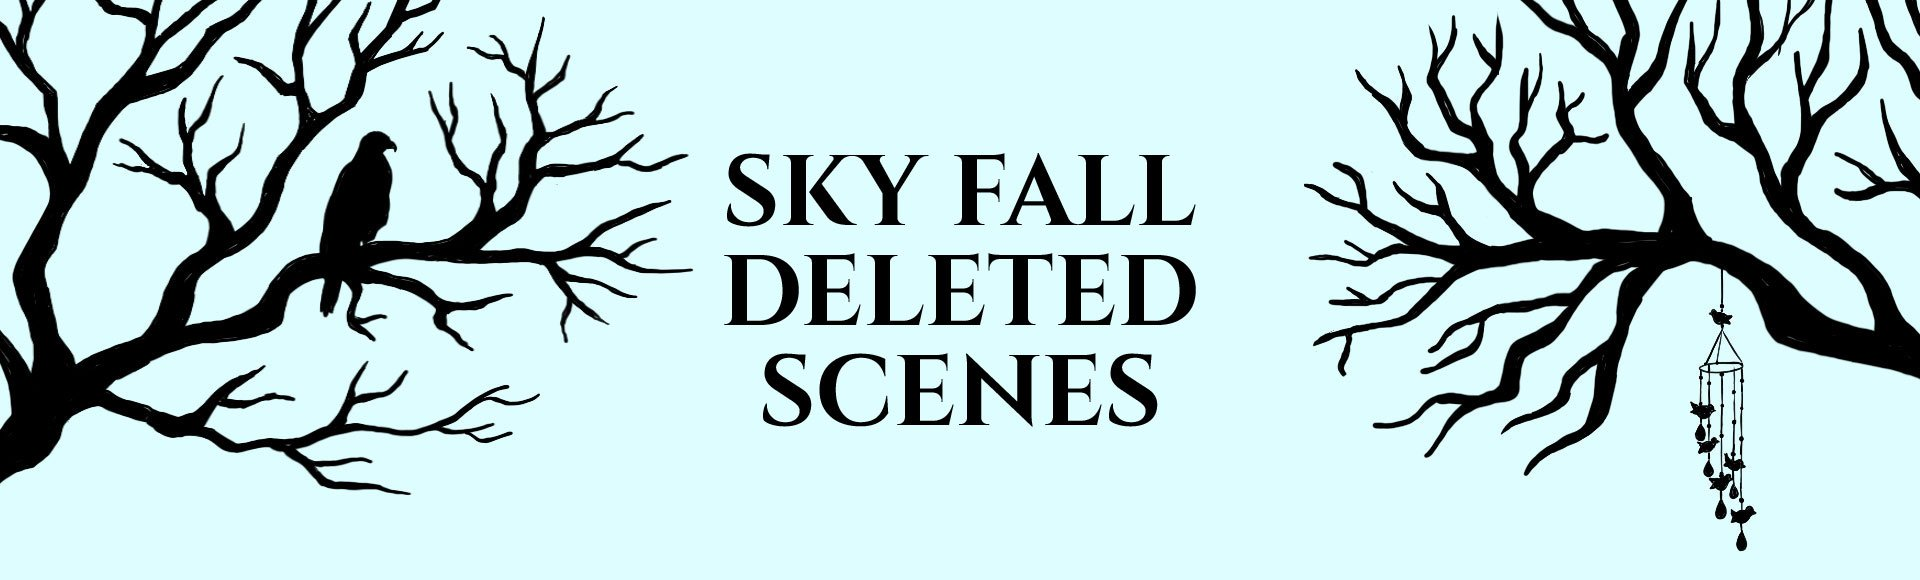 Sky Fall Deleted Scenes